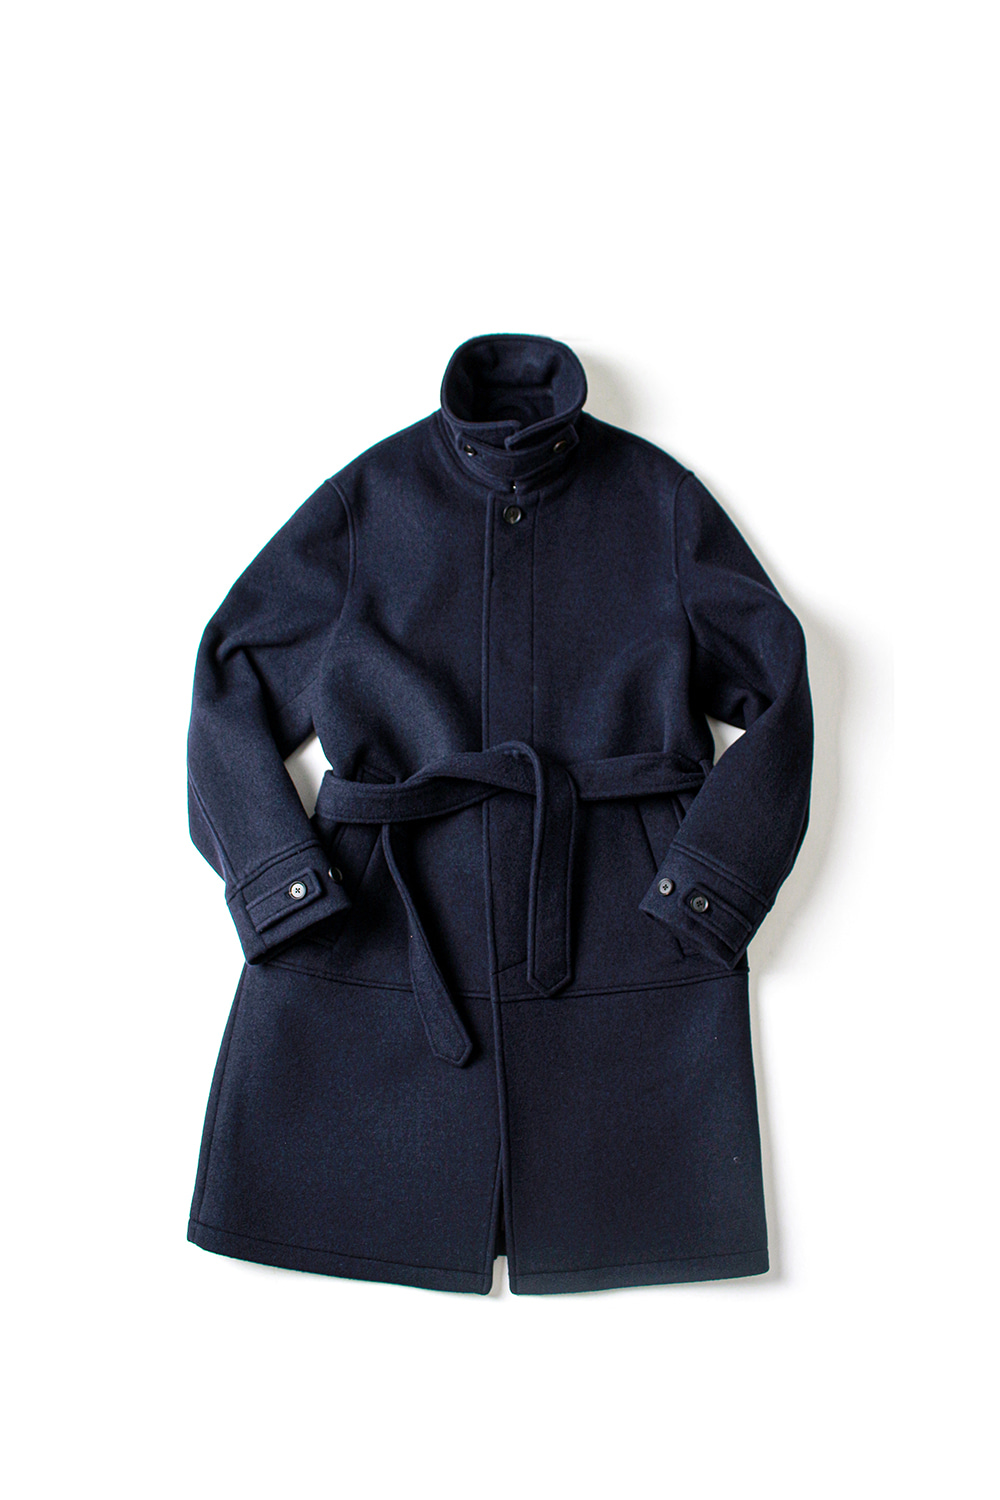 [Ourselves] BELTED MAC COAT (MIDNIGHT NAVY)